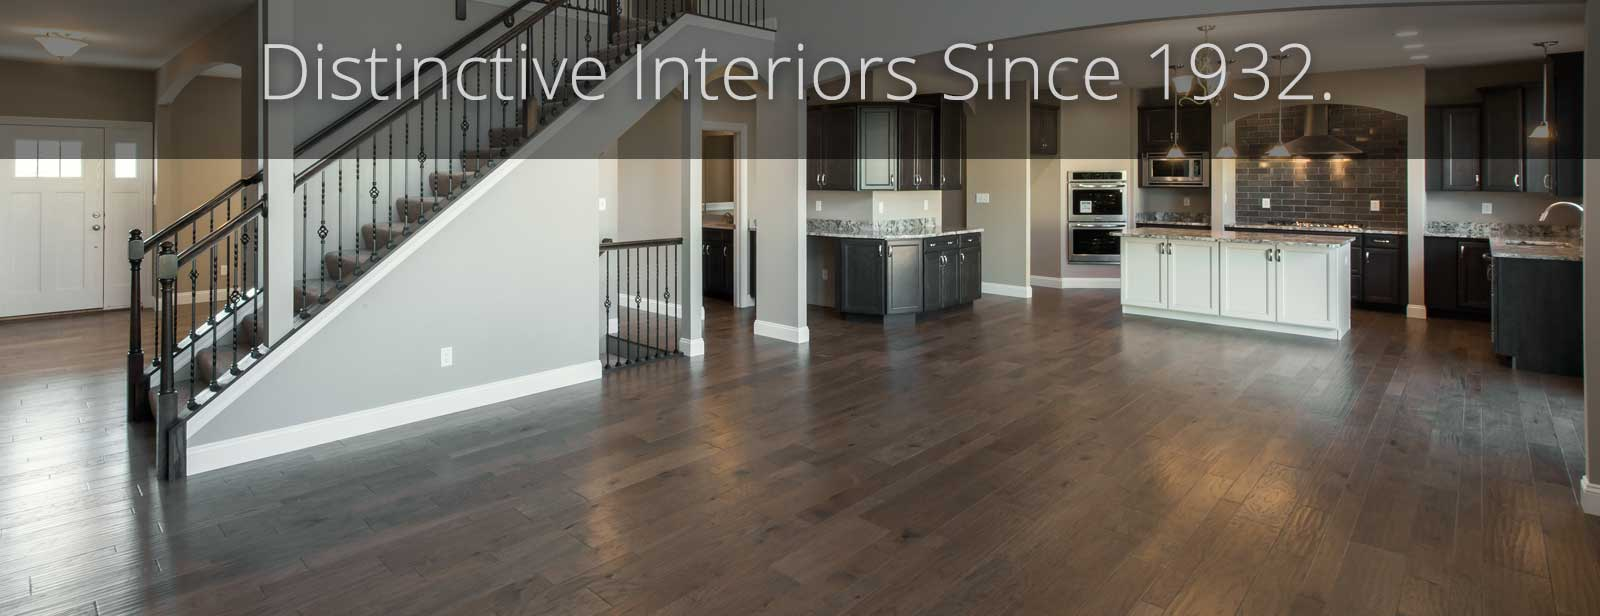 Henges Interiors Flooring St Louis Residential And Commercial Flooring Contractor